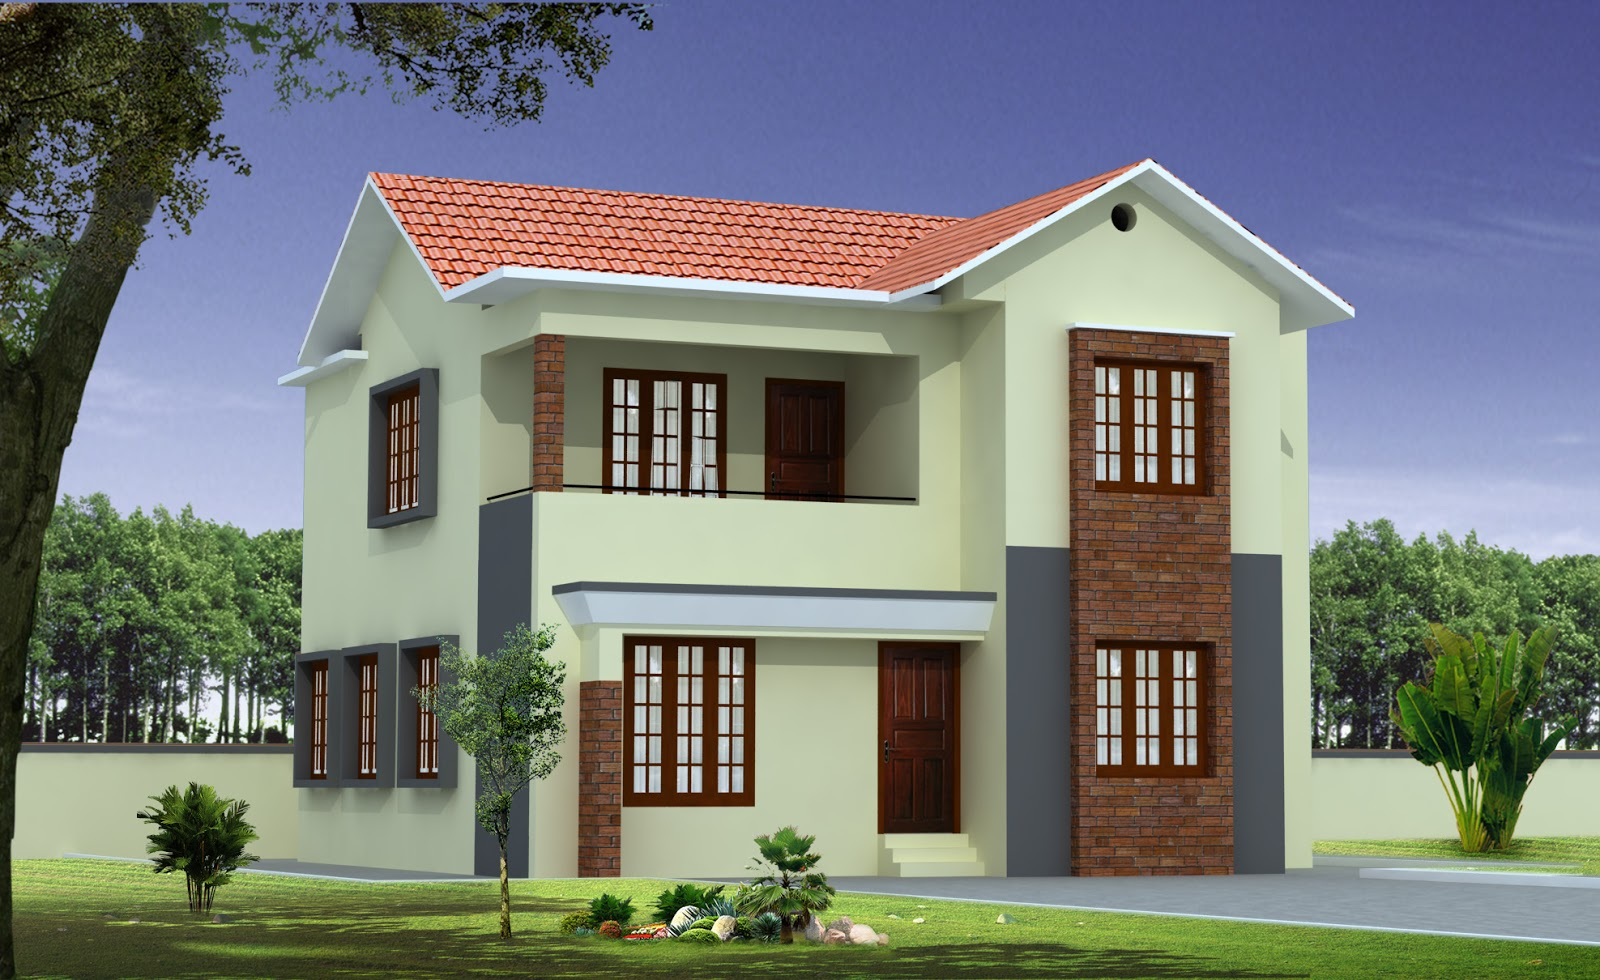 Build a building latest home designs for House design and build